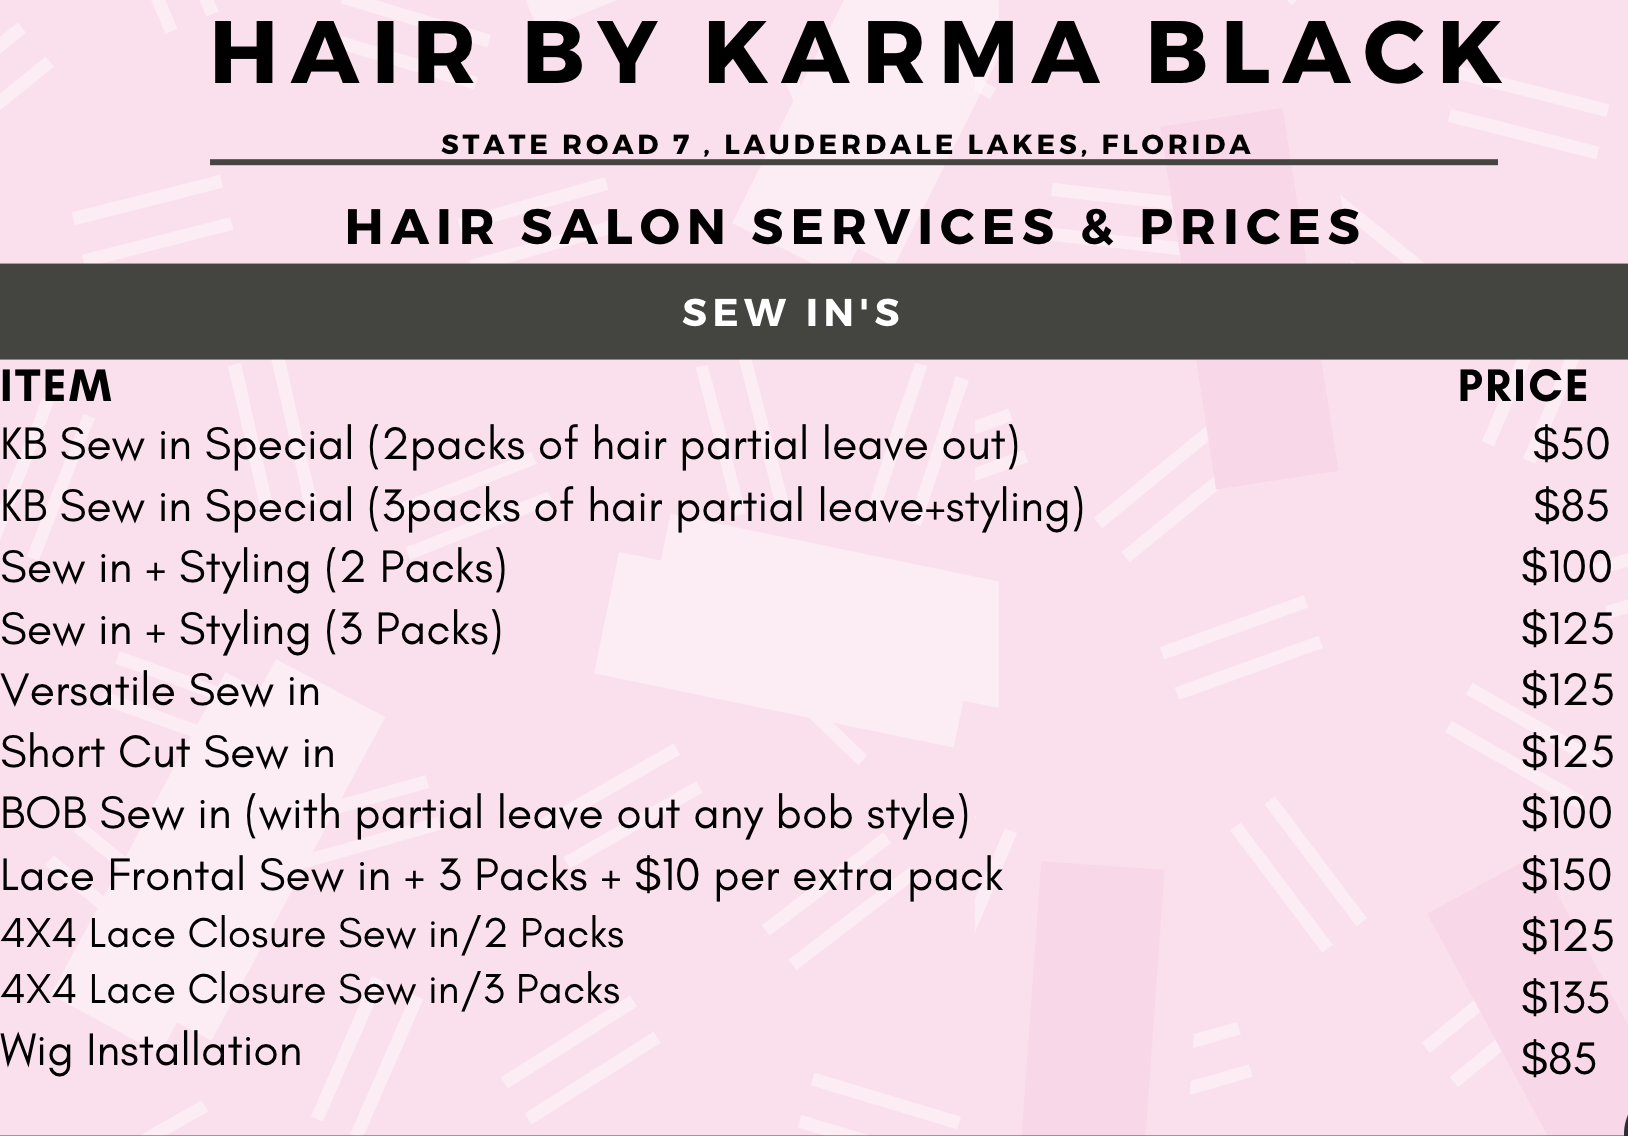 Black Hair Salon Sew In Fort Lauderdale Black Hair Salons Hair Salon Prices Hair Salon Price List